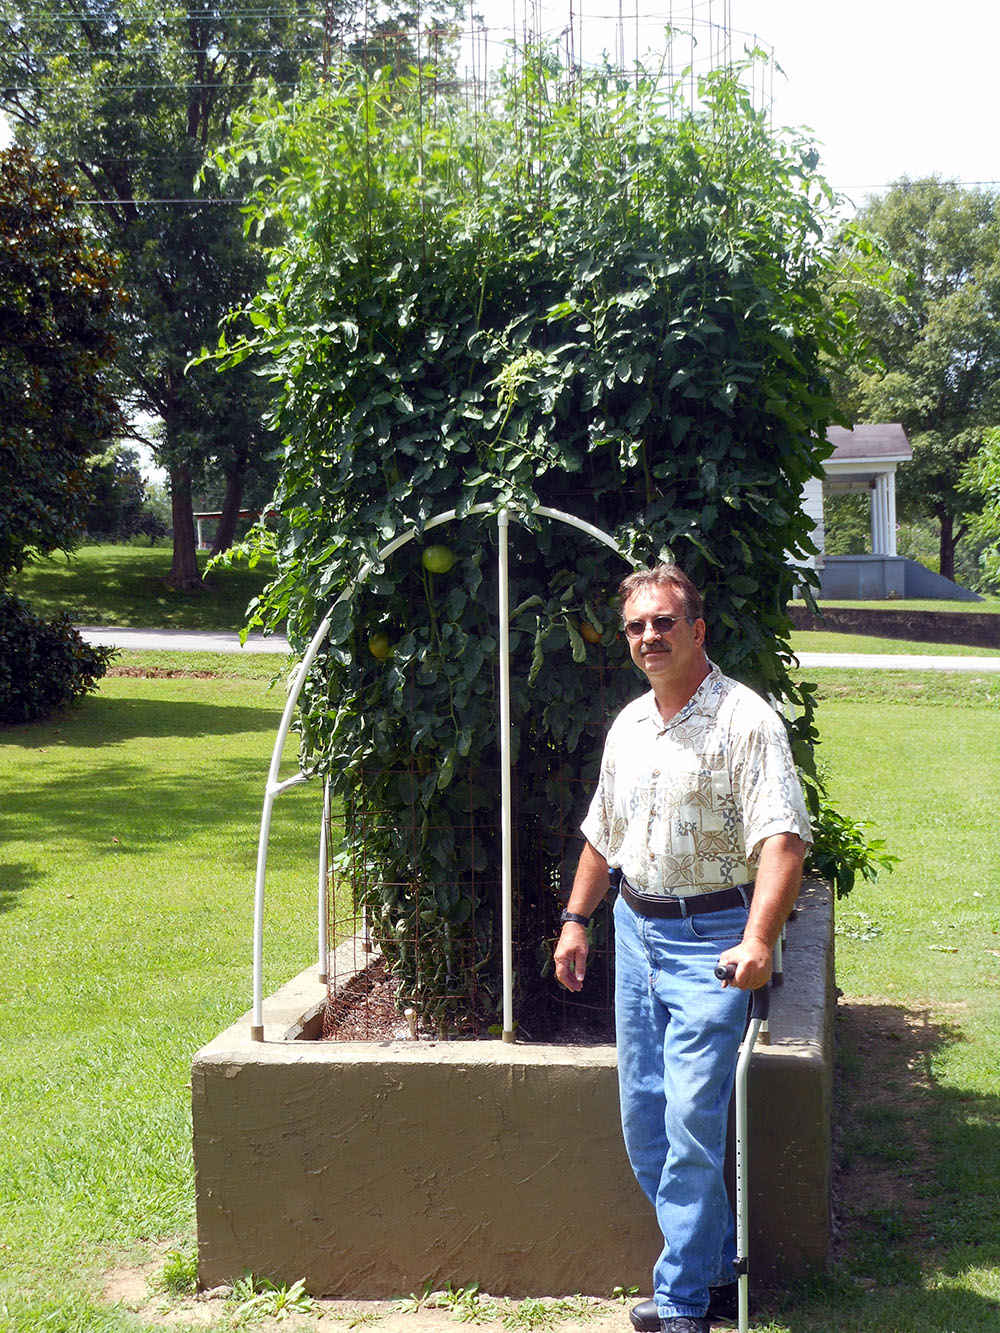 07-10-2015 Me and Better Boy Tomato Plants 01